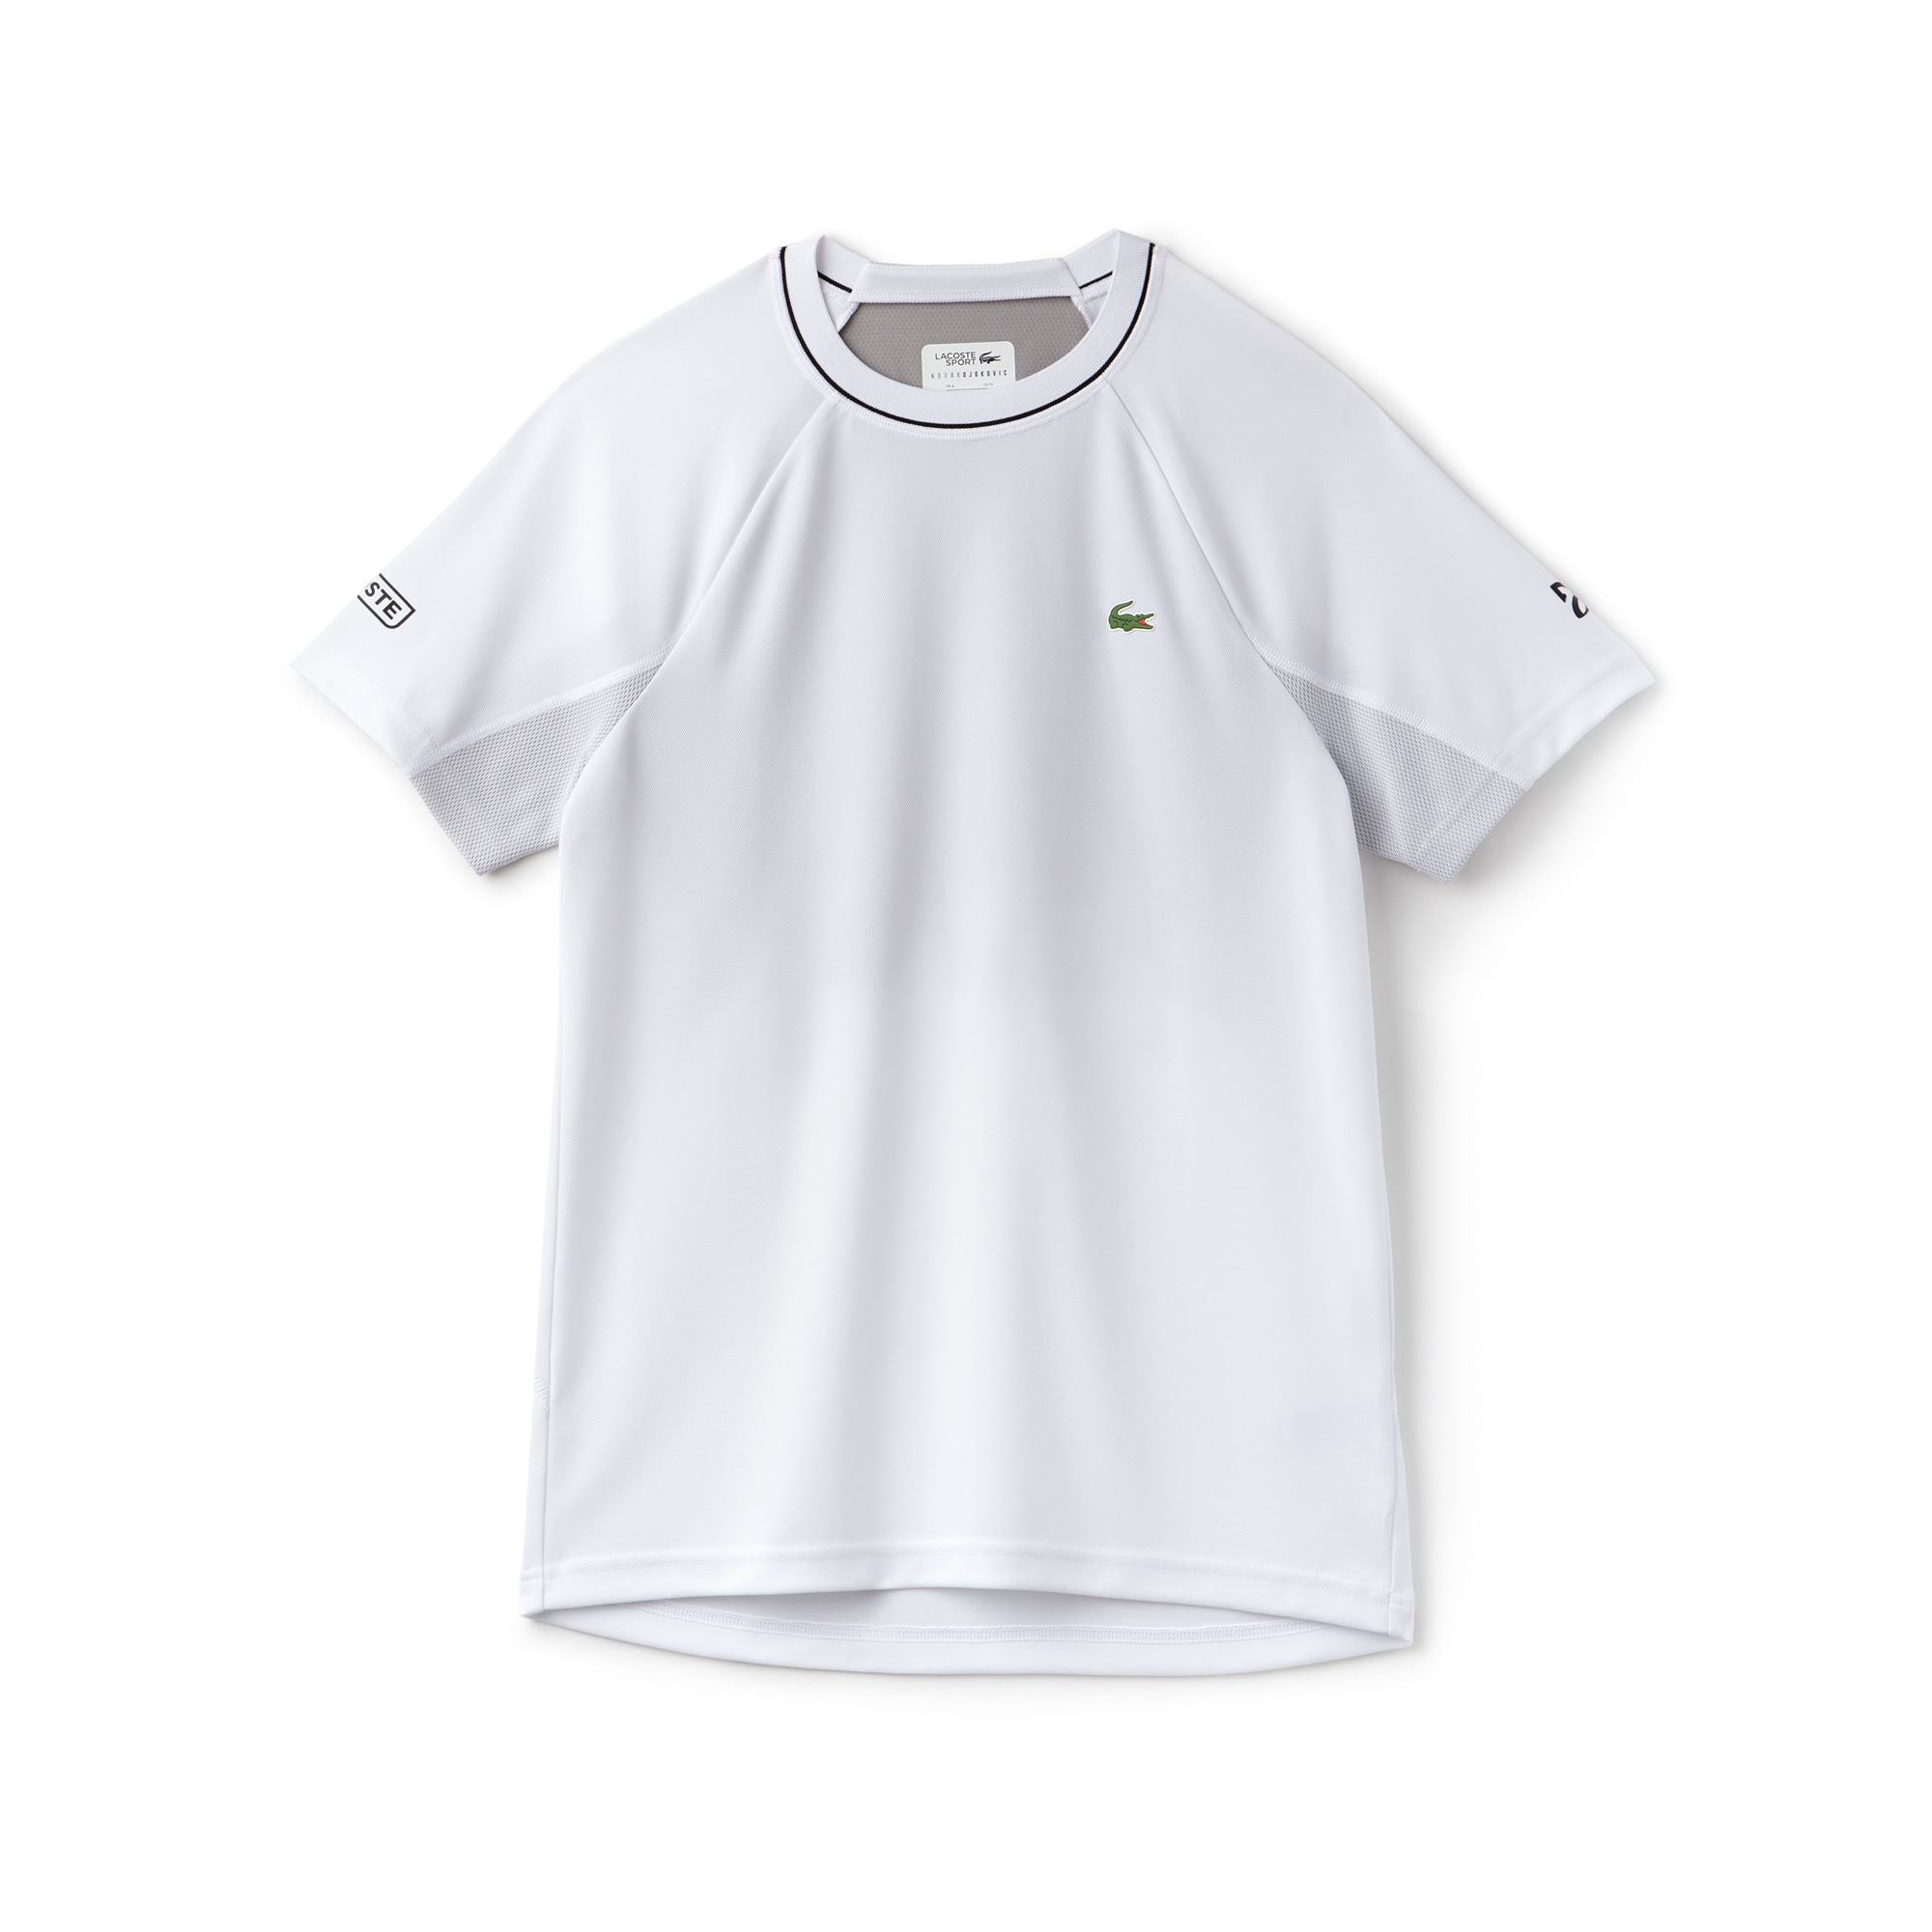 T-shirt girocollo Lacoste SPORT COLLEZIONE NOVAK DJOKOVIC SUPPORT WITH STYLE in piqué tecnico e rete